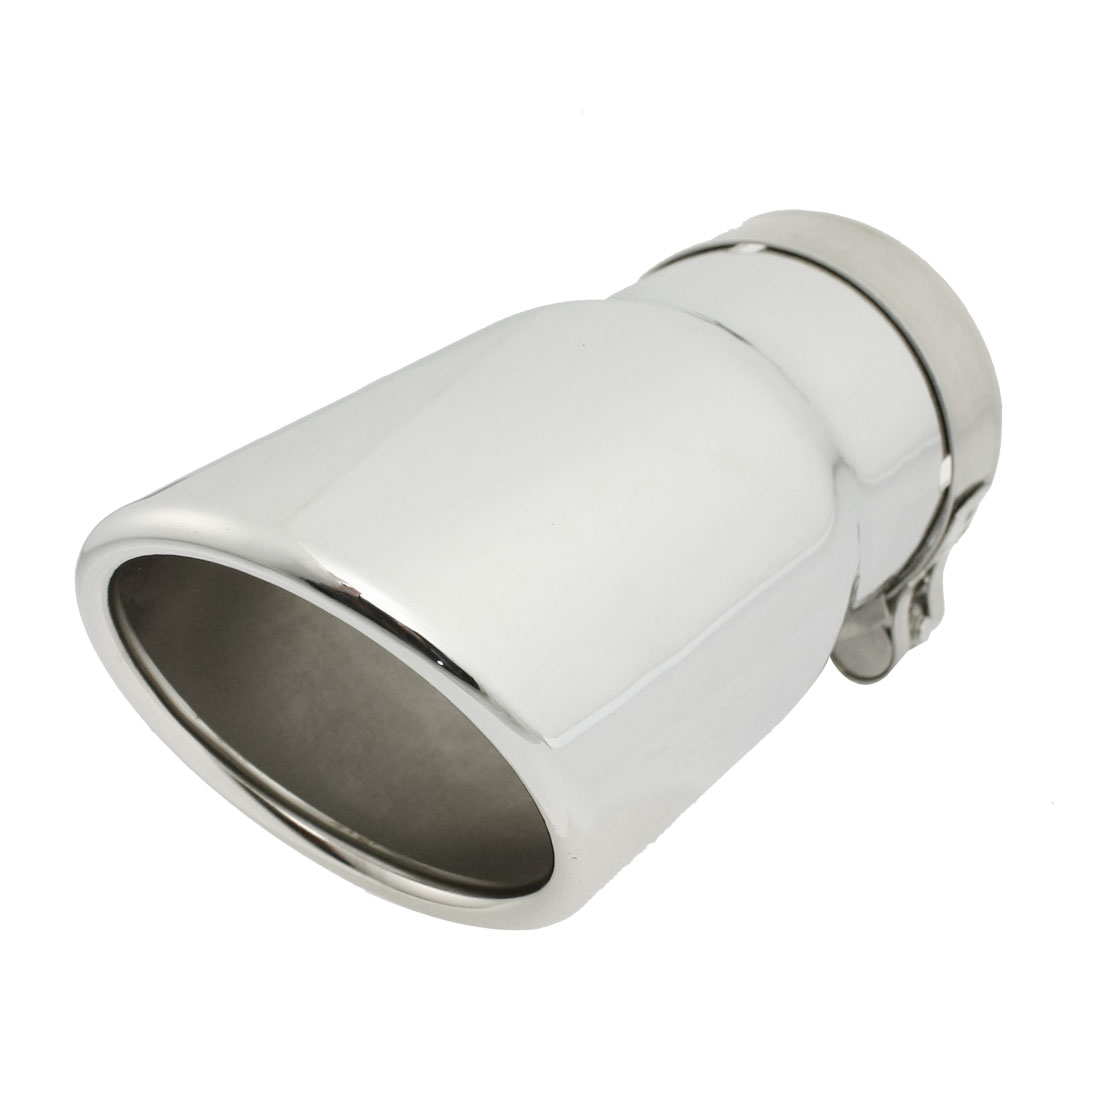 Stainless Steel Oval Rolled Slanted Exhaust Muffler Tip for Jeep Wrangler